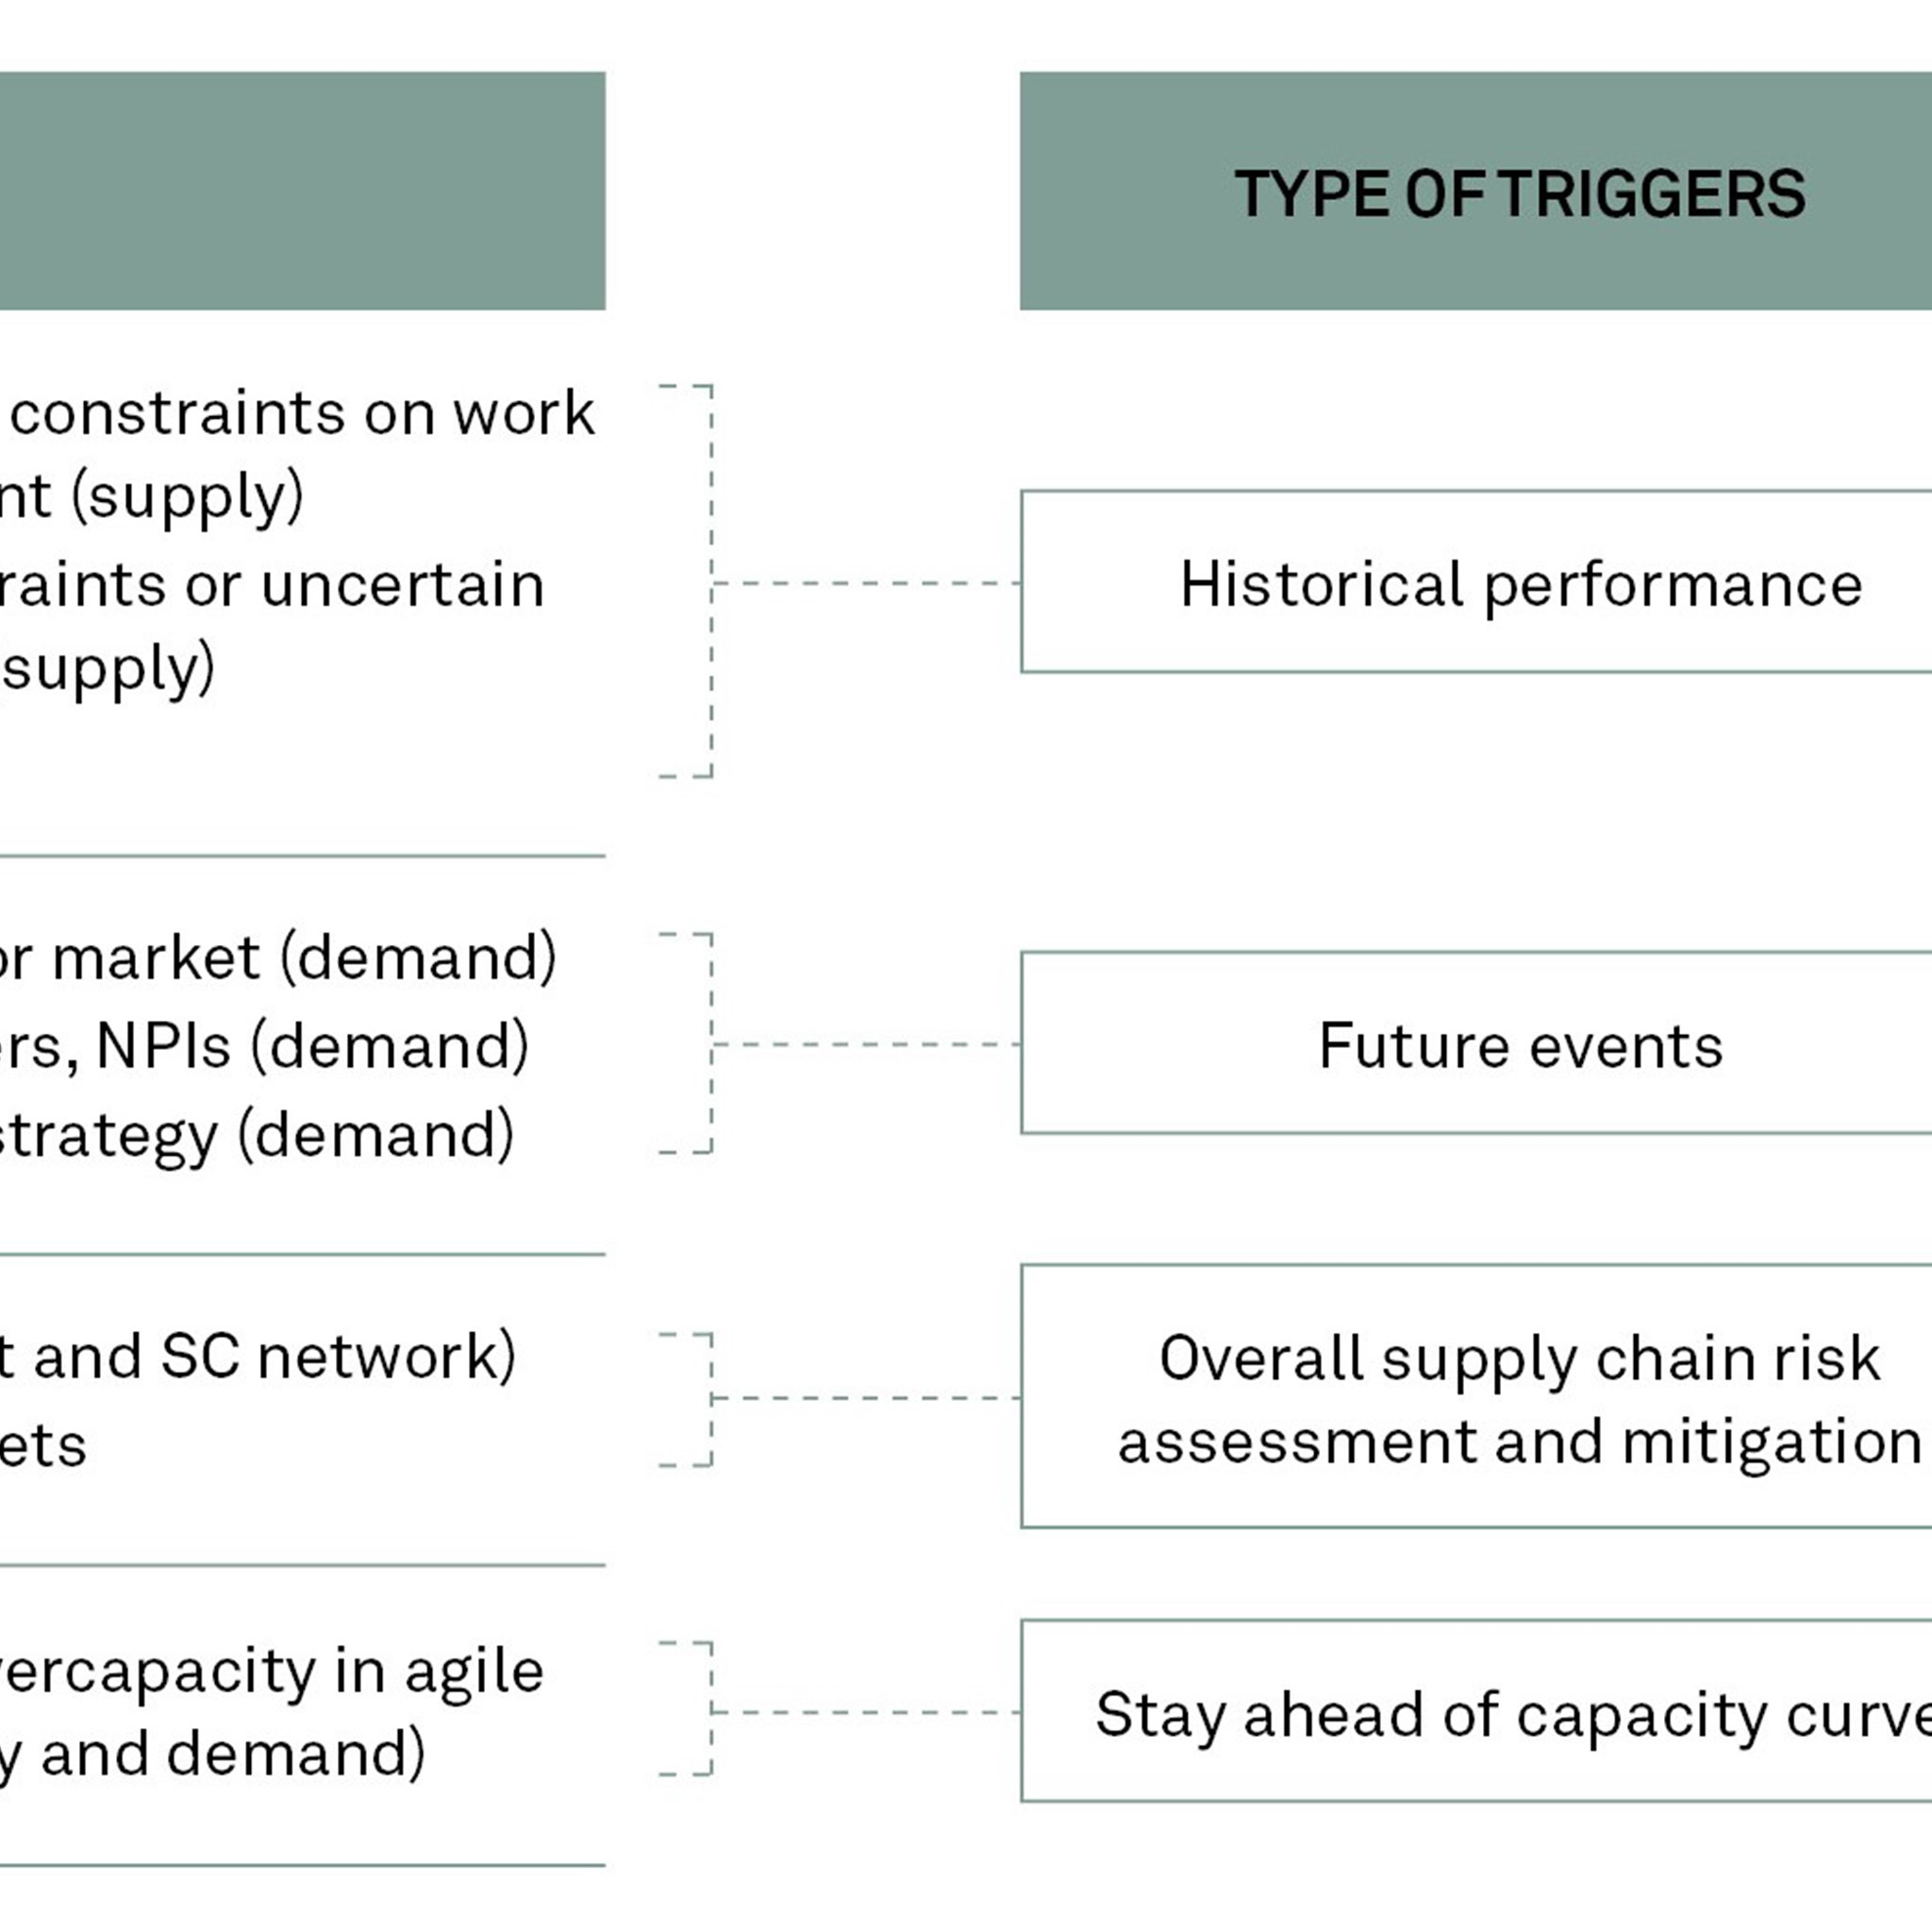 Triggers influencing supply chain scenario planning